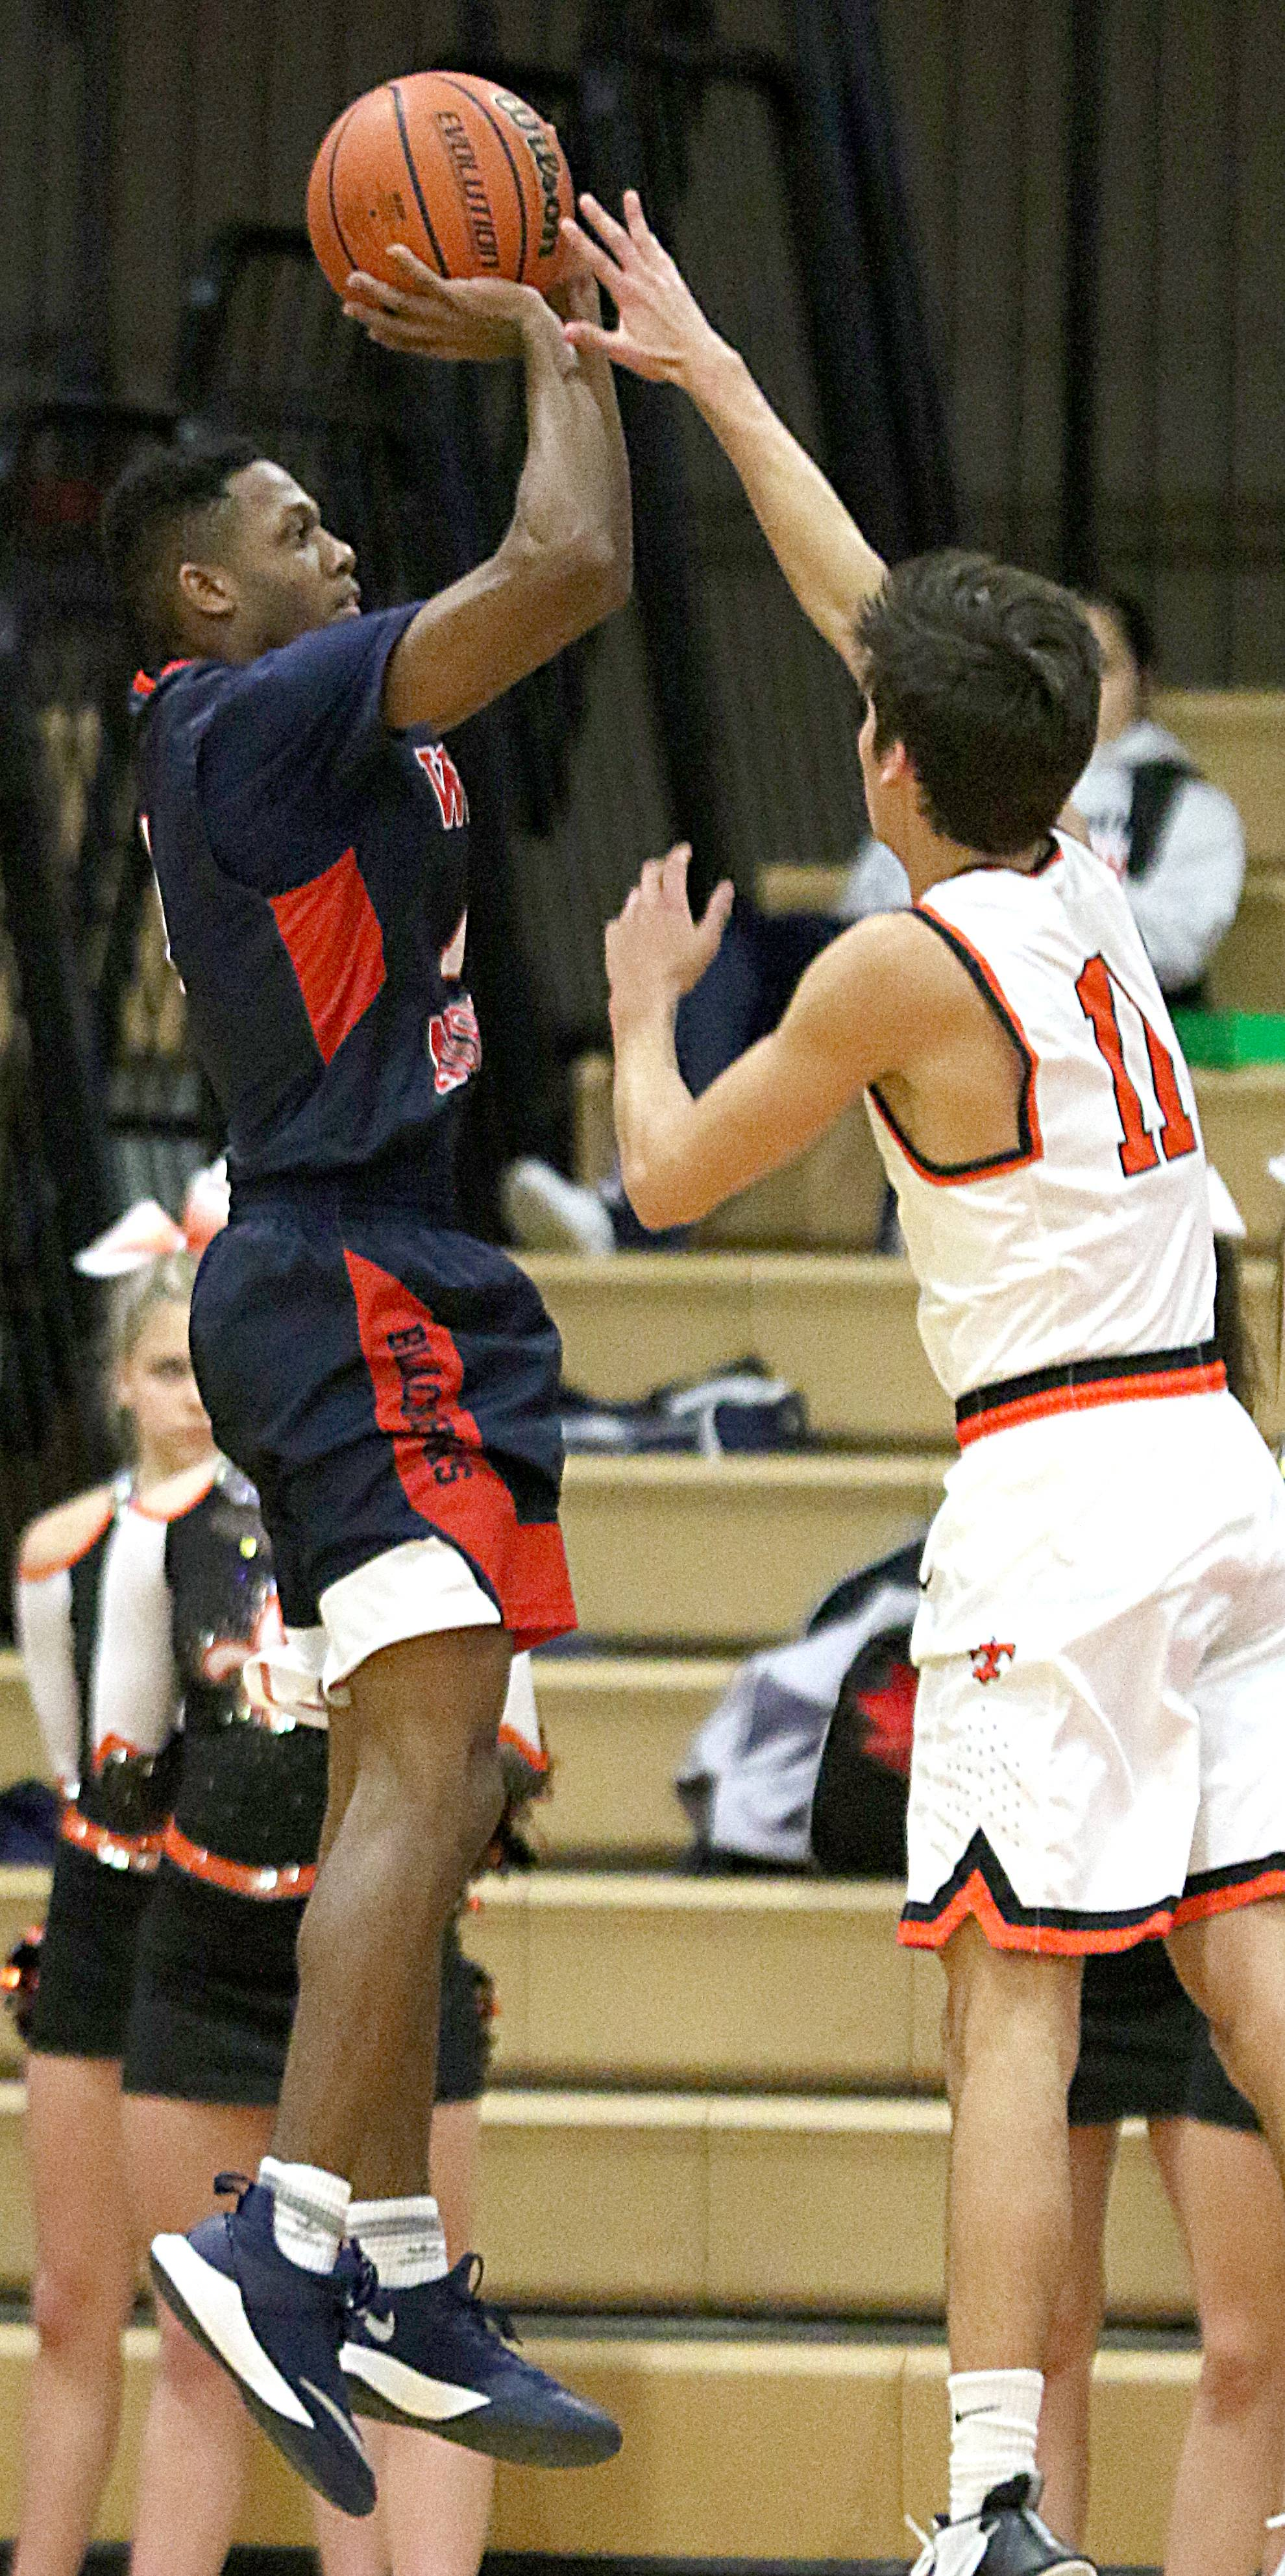 West Aurora's Traevon Brown takes a jumper against St. Charles earlier this season. The Blackhawks battle Belleville West Tuesday in the Illinois State supersectional at Redbird Arena in Normal.